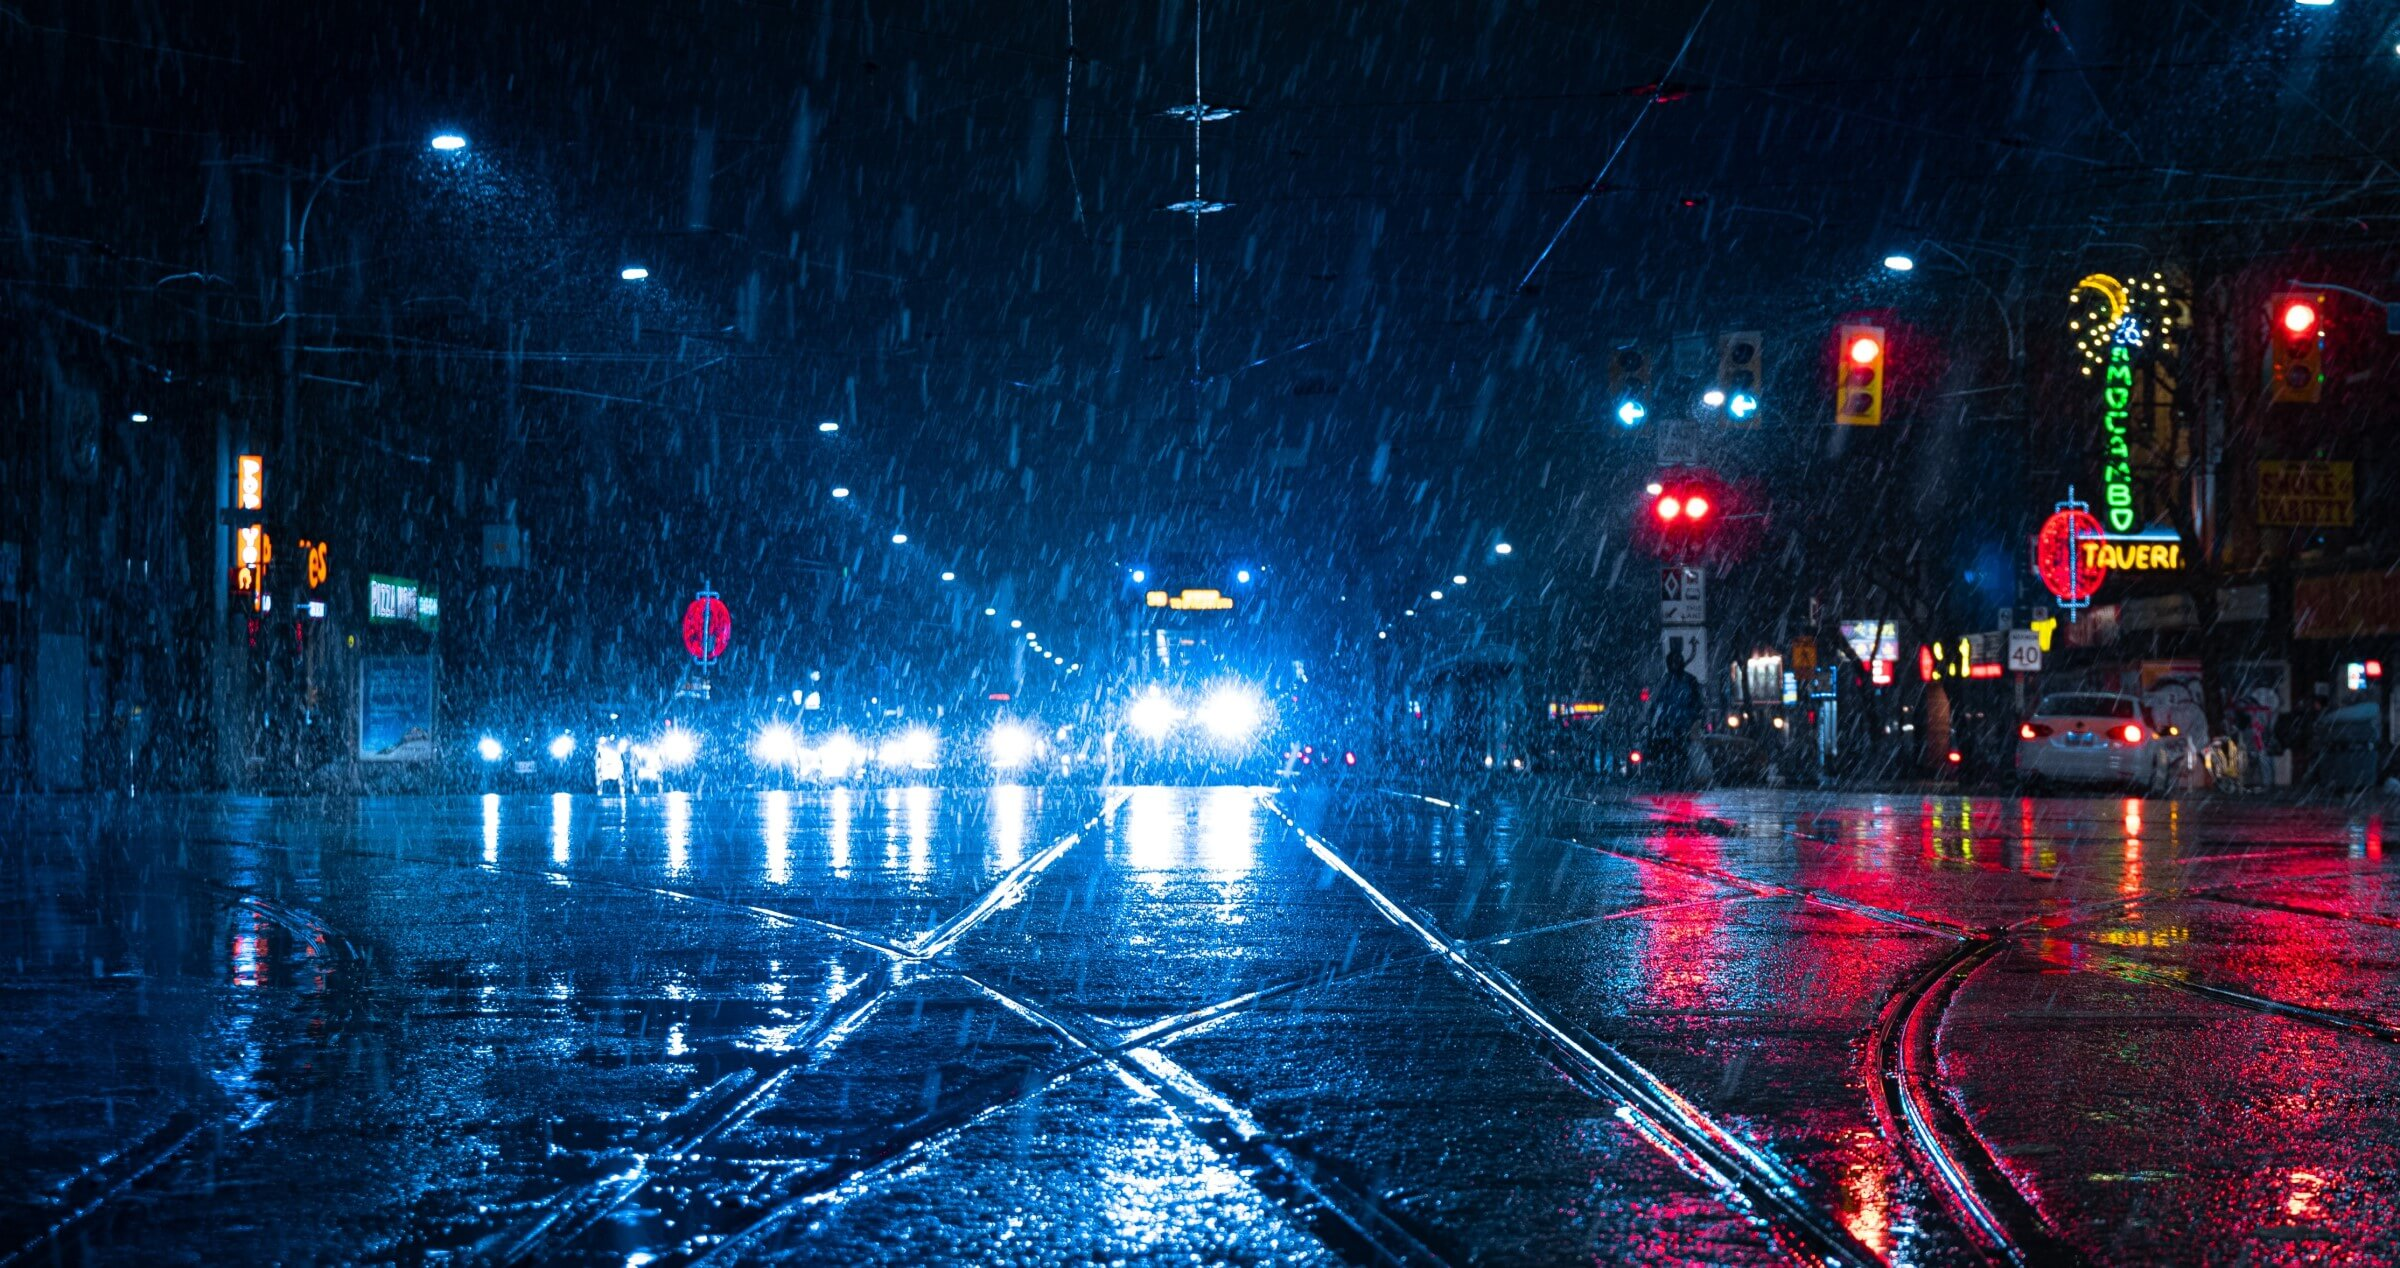 A busy city intersection on a dark and raining night with lights reflecting off the road